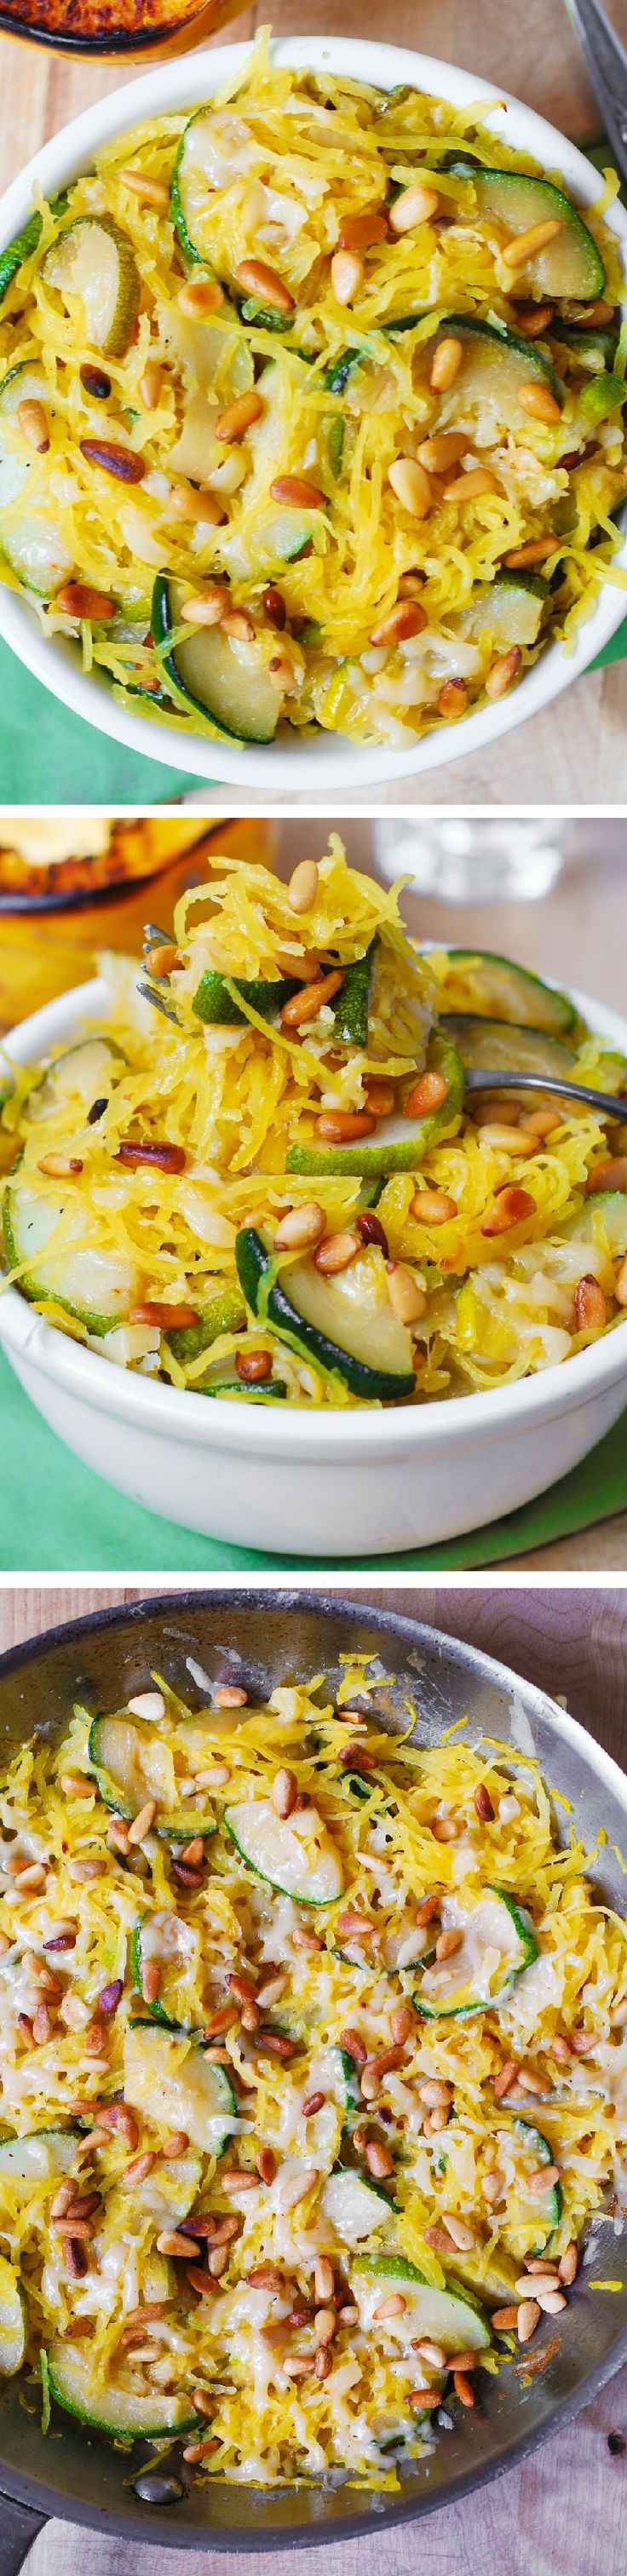 Zucchini cooked with garlic in olive oil, mixed with spaghetti squash, topped with melted, freshly grated, Parmesan cheese AND then sprinkled with toasted pine nuts. Delicious, healthy, gluten free, vegetarian, meatless recipe!